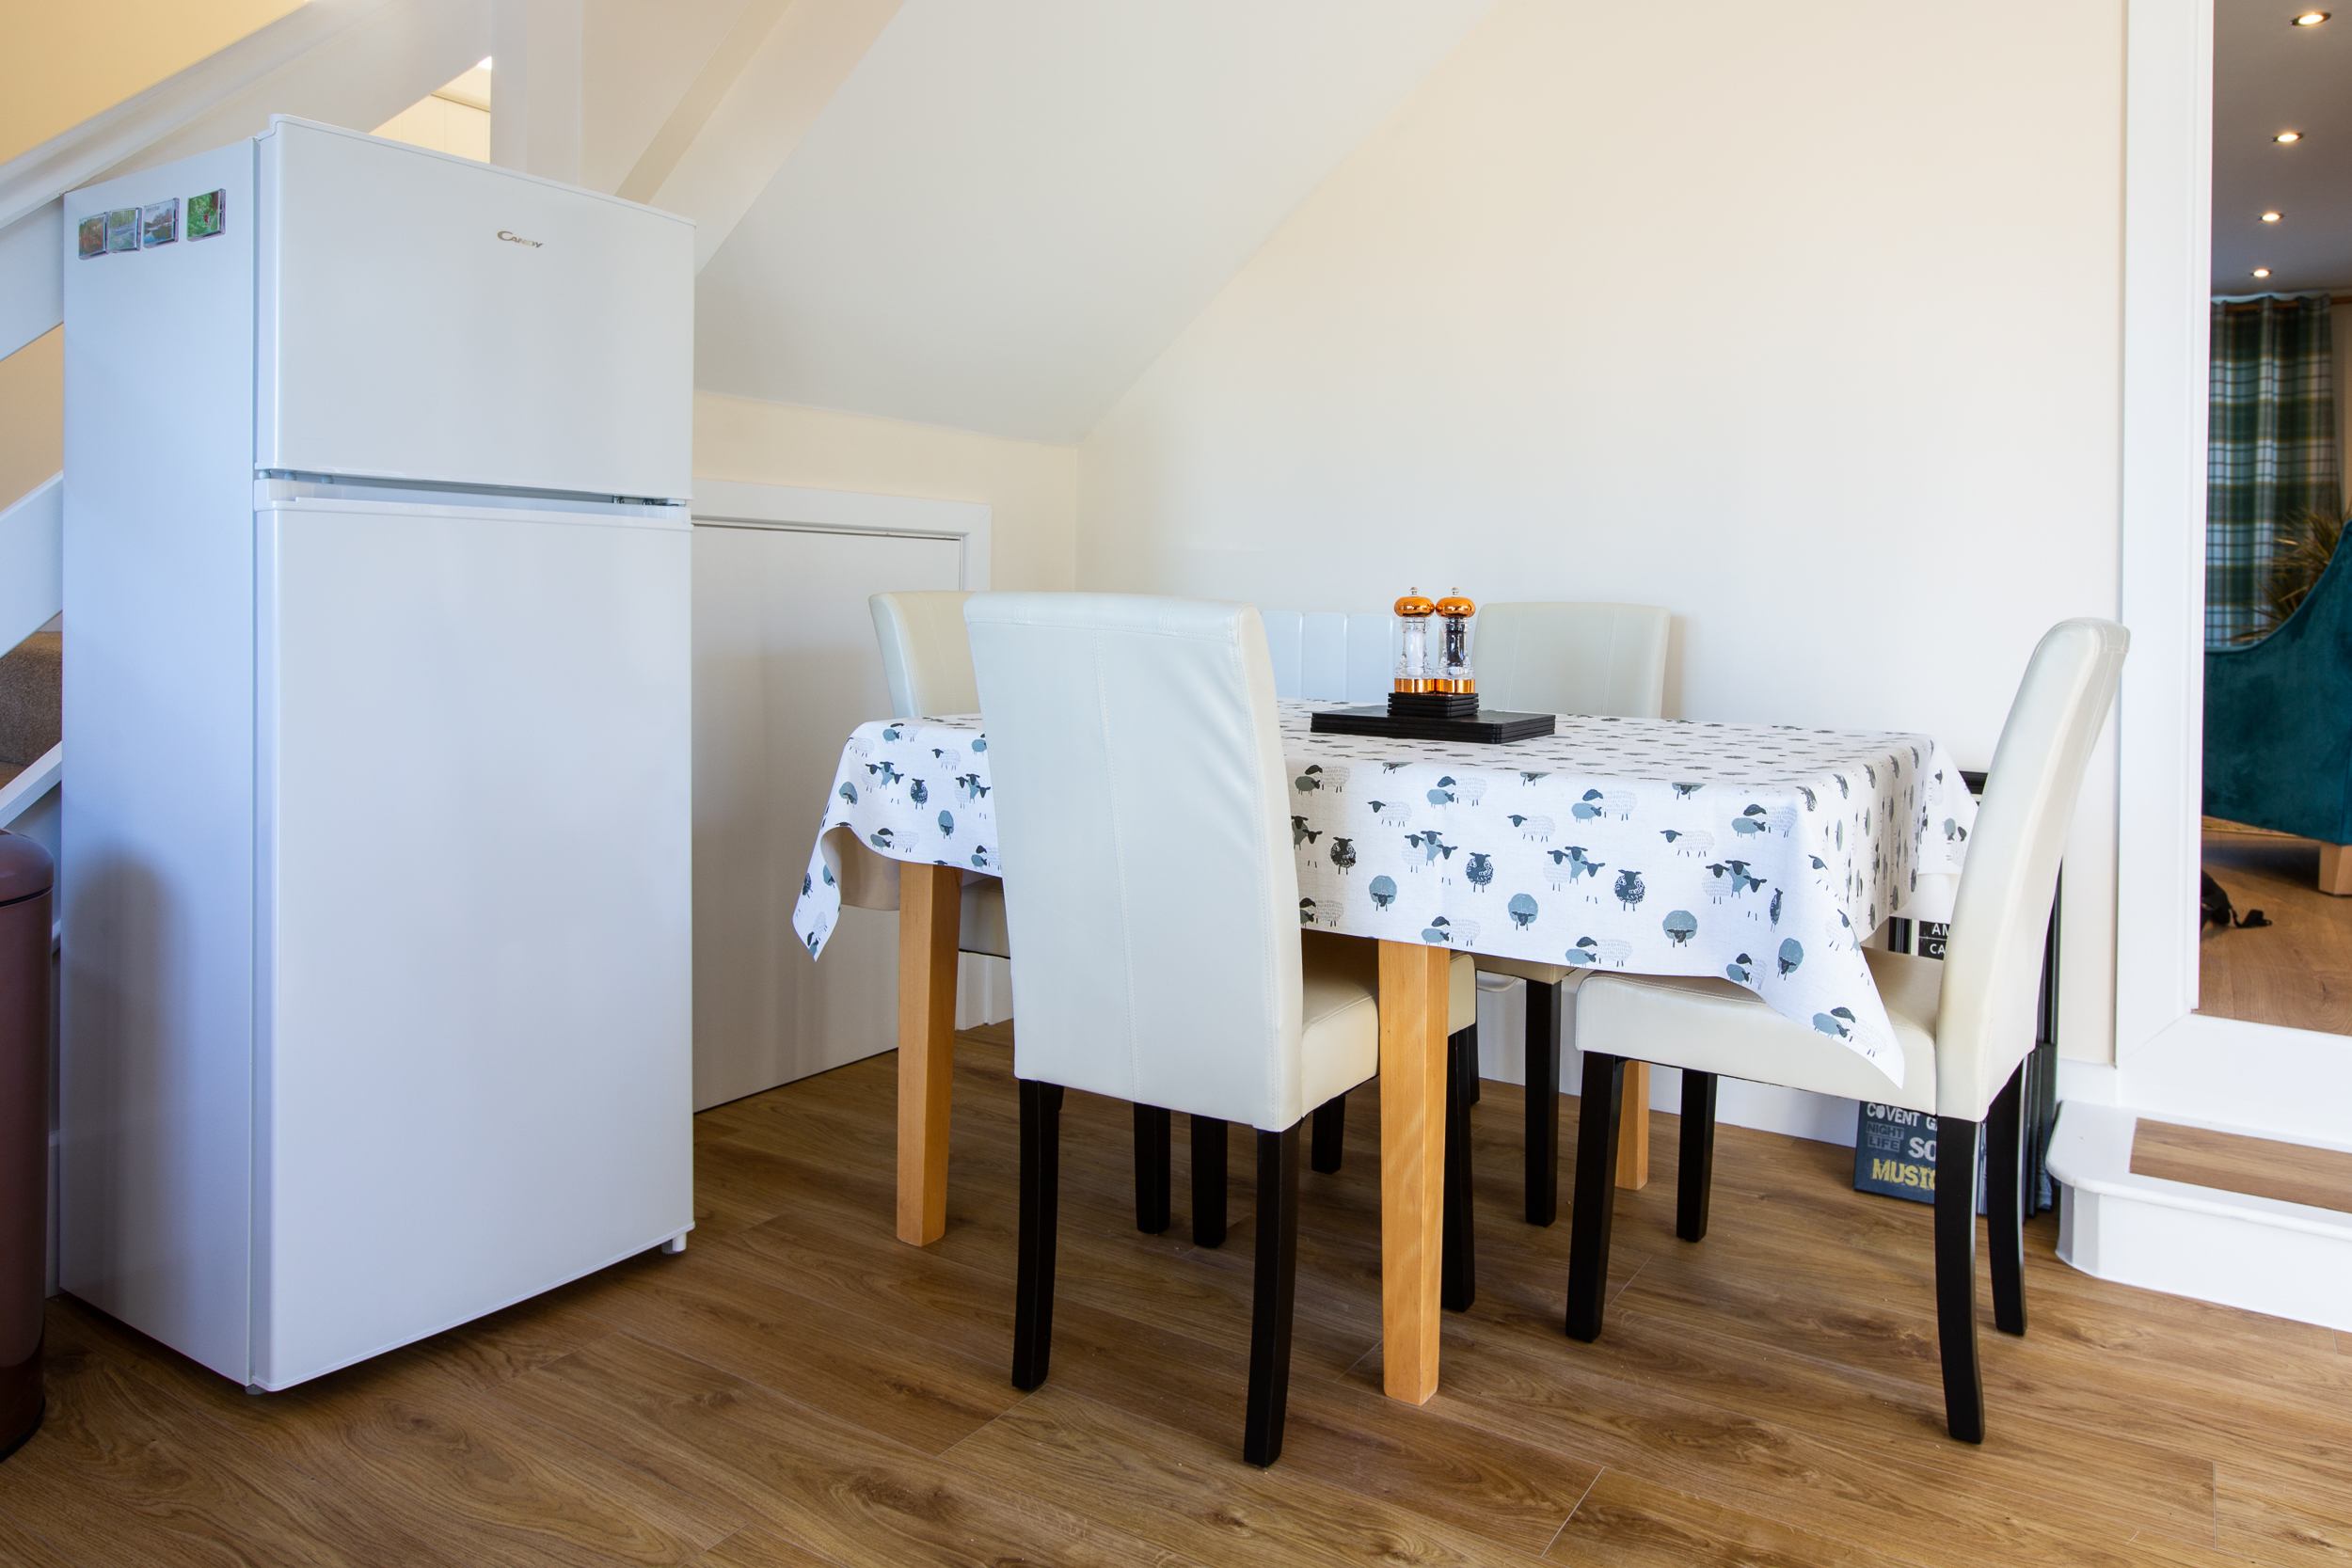 Plenty of space for 4 to dine in comfort